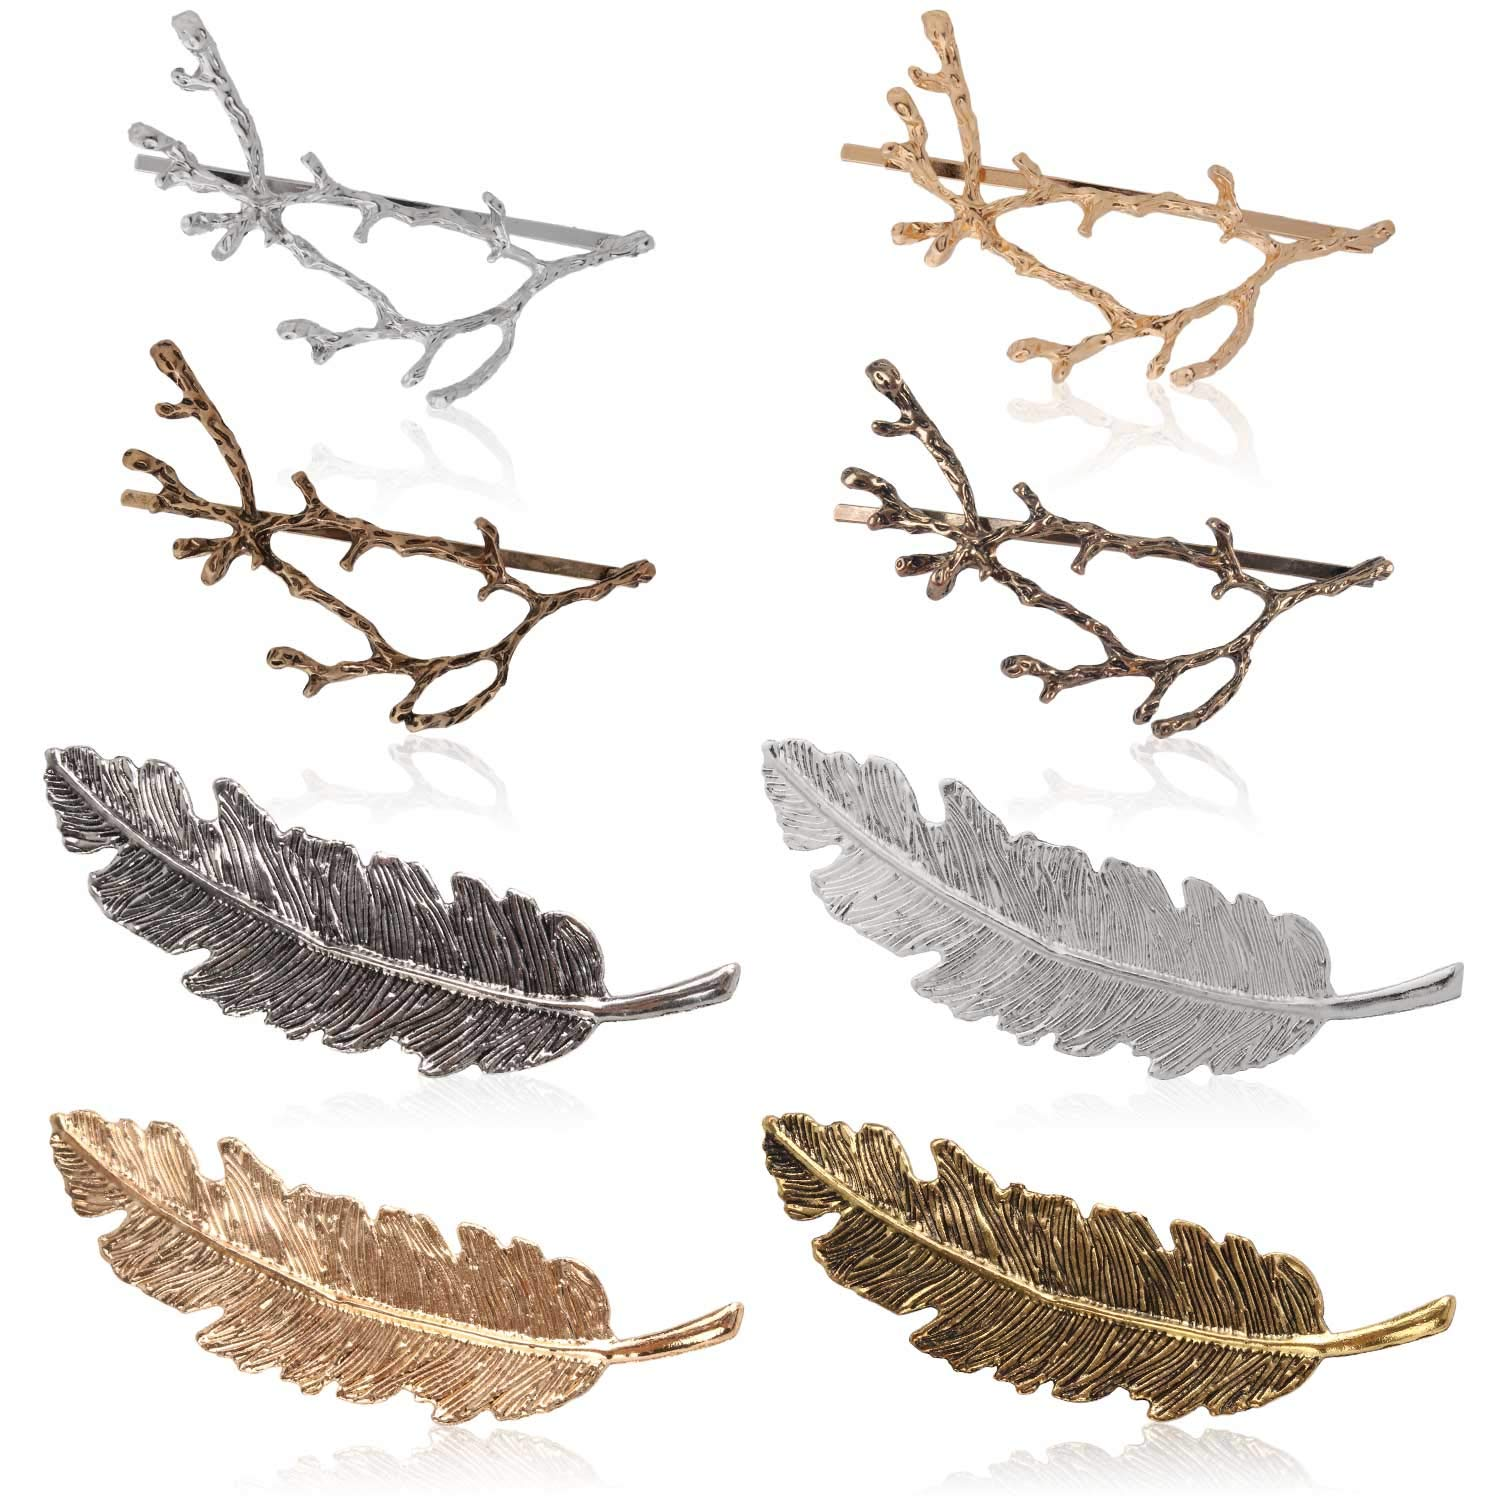 Womens Barrettes, Fascigirl 12PCS Metal Hairpins Gold Silver Butterfly Hair Clips for Girls Tree Branch Alloy Geometrical Moon Circle Bowknot Hair Circle Barrettes (Tree Branch + Tree Leaf)